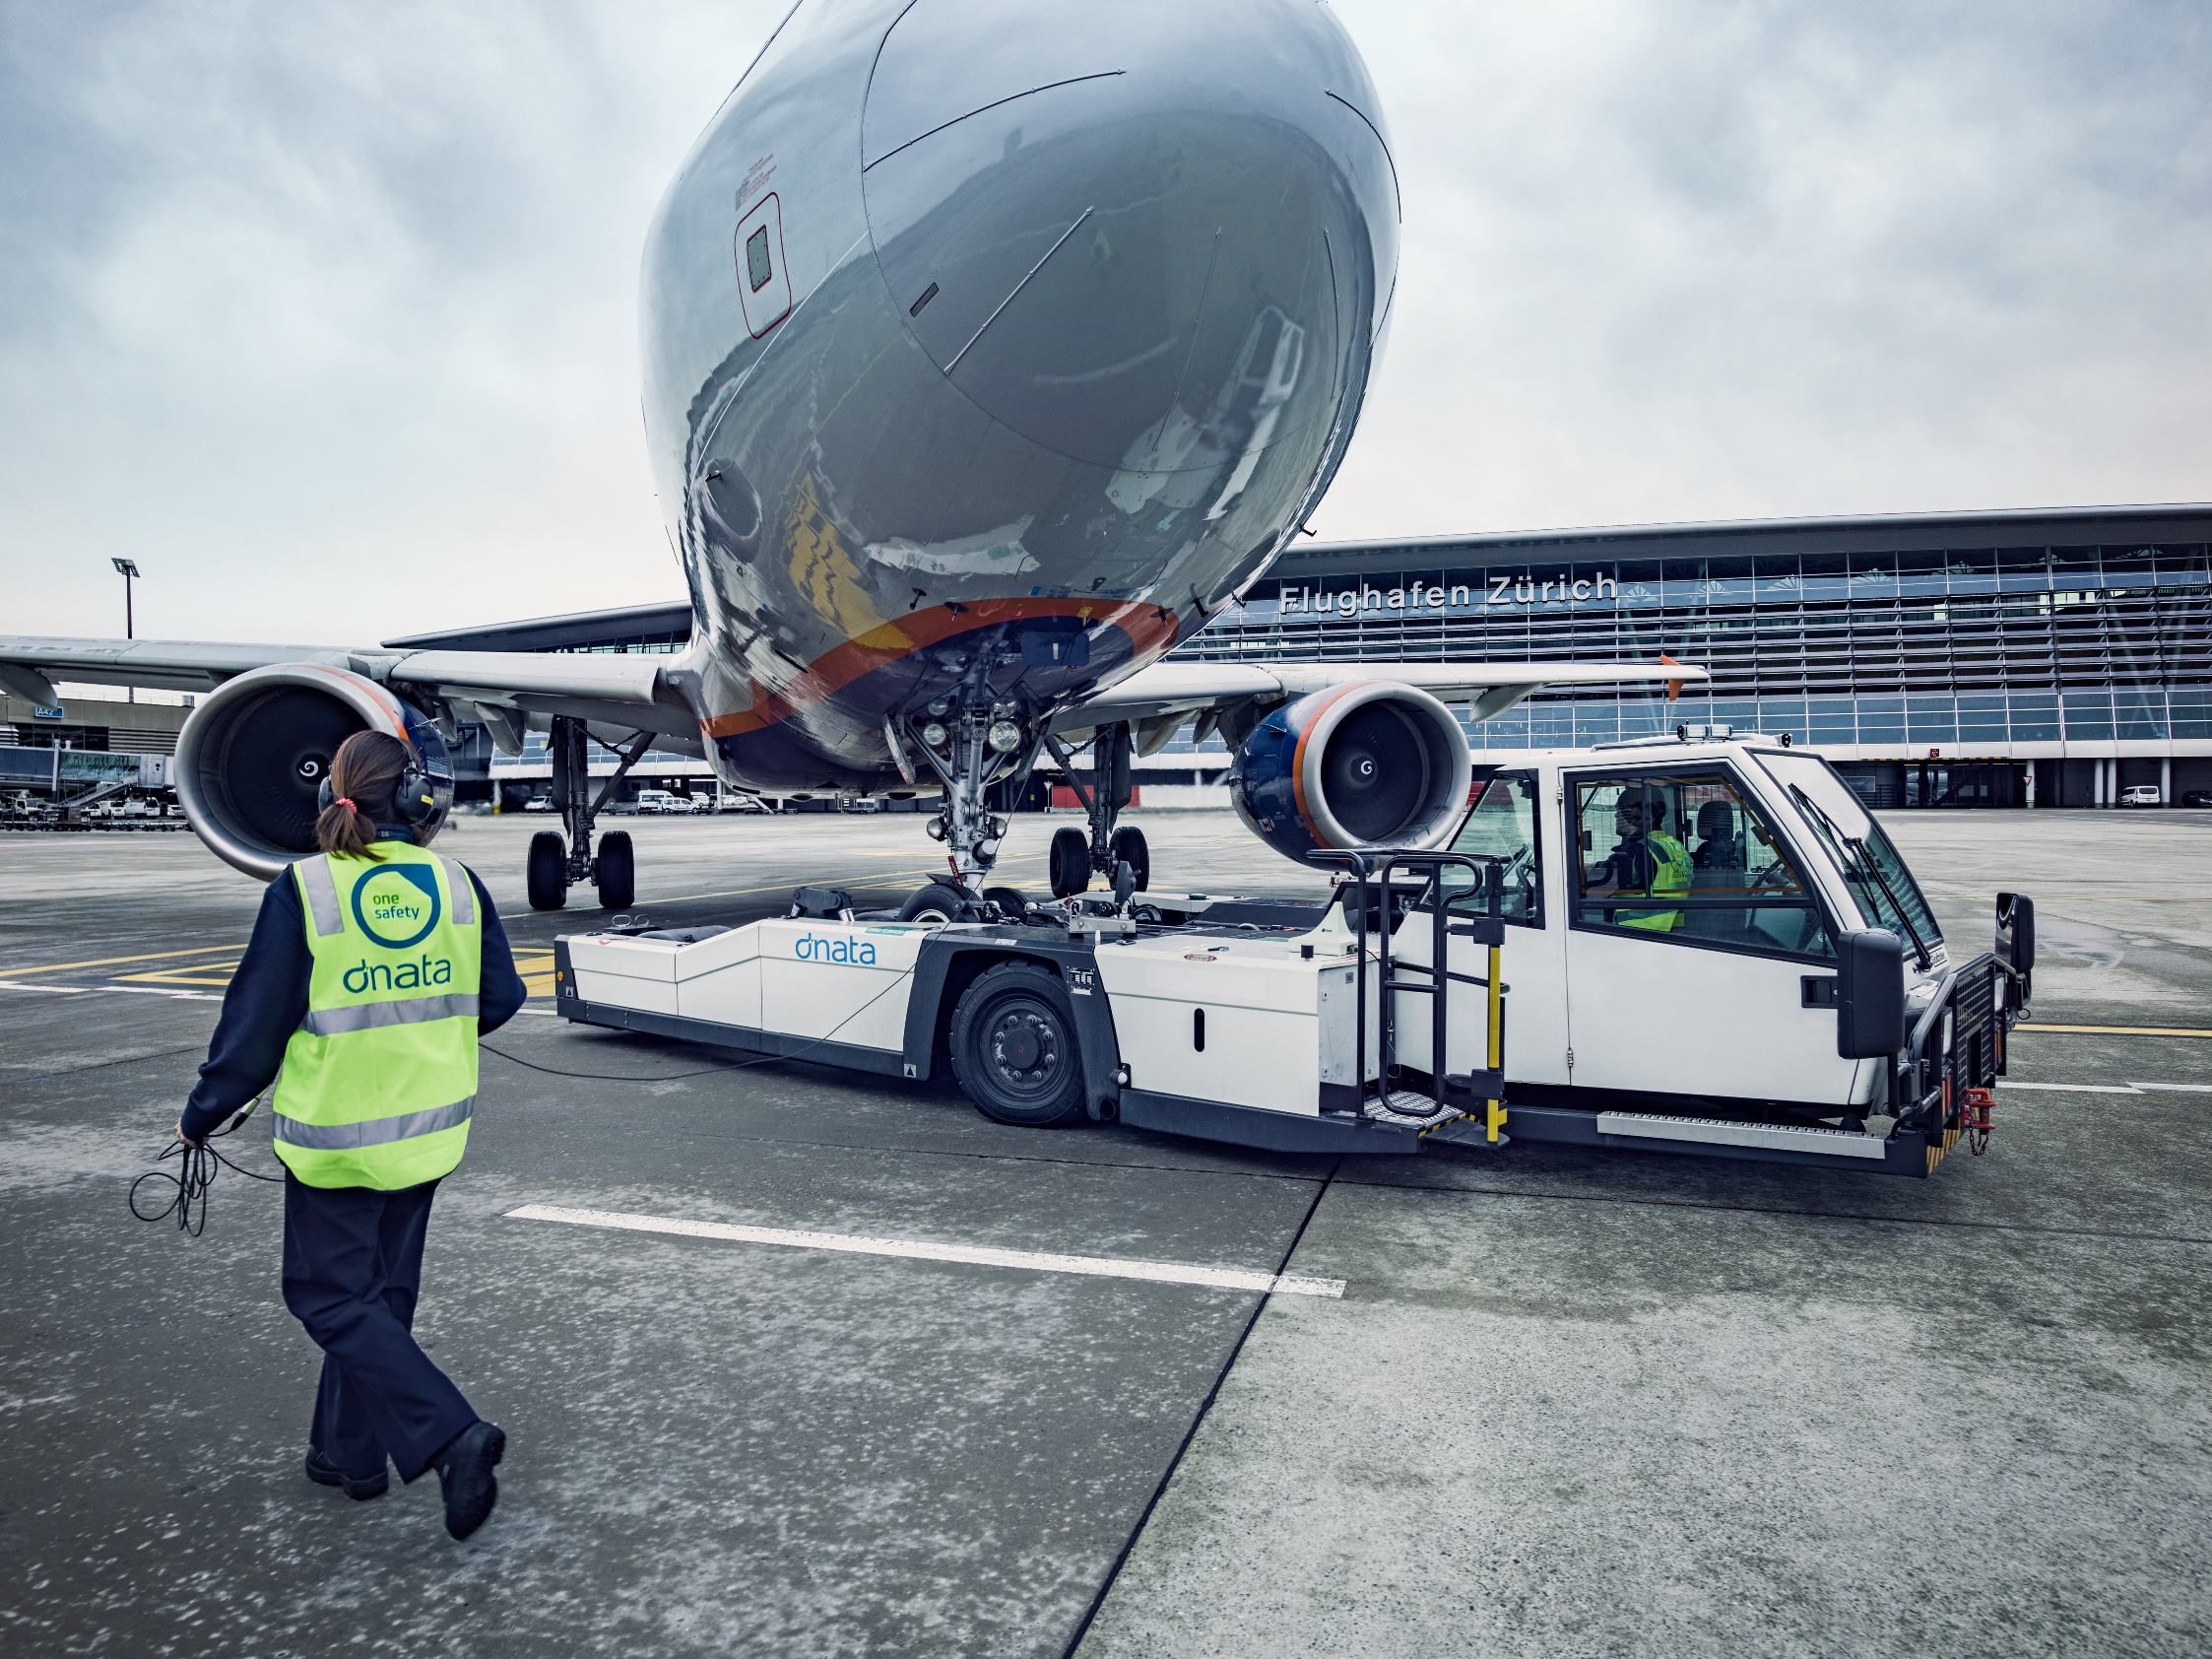 dnata wins licence to continue cargo & ground handling services at Zurich Airport for next seven years